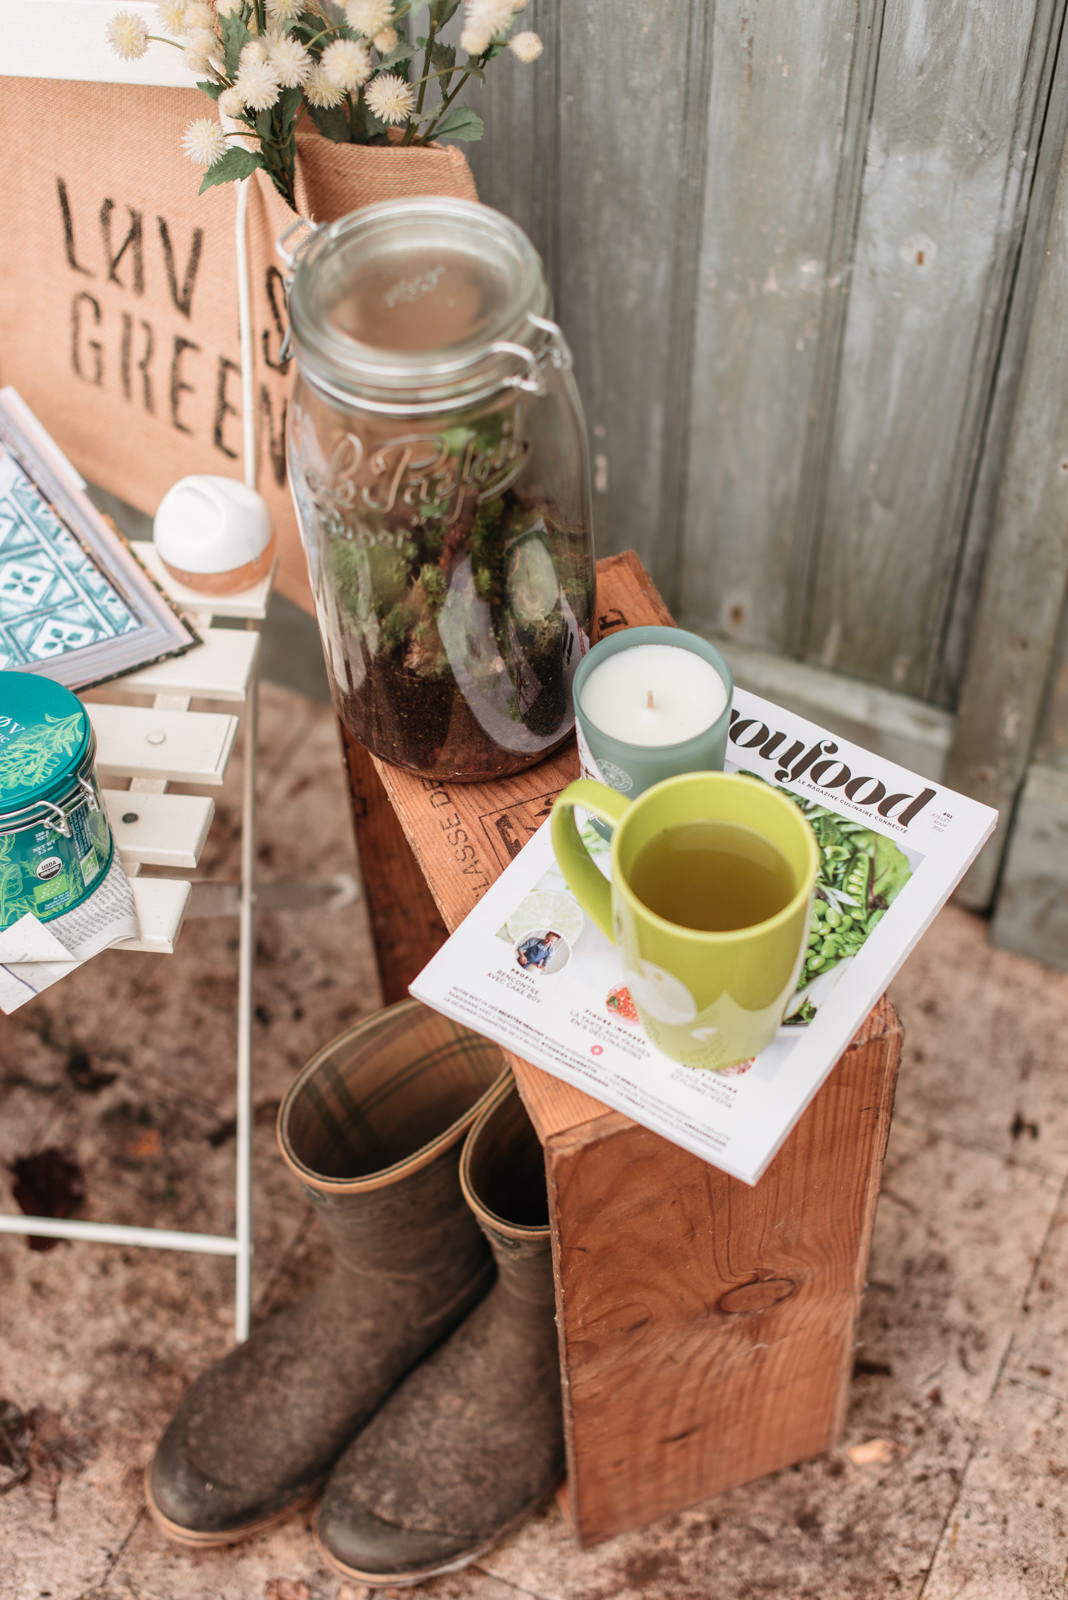 Blog-Mode-And-The-City-Lifestyle-lovely-green-4